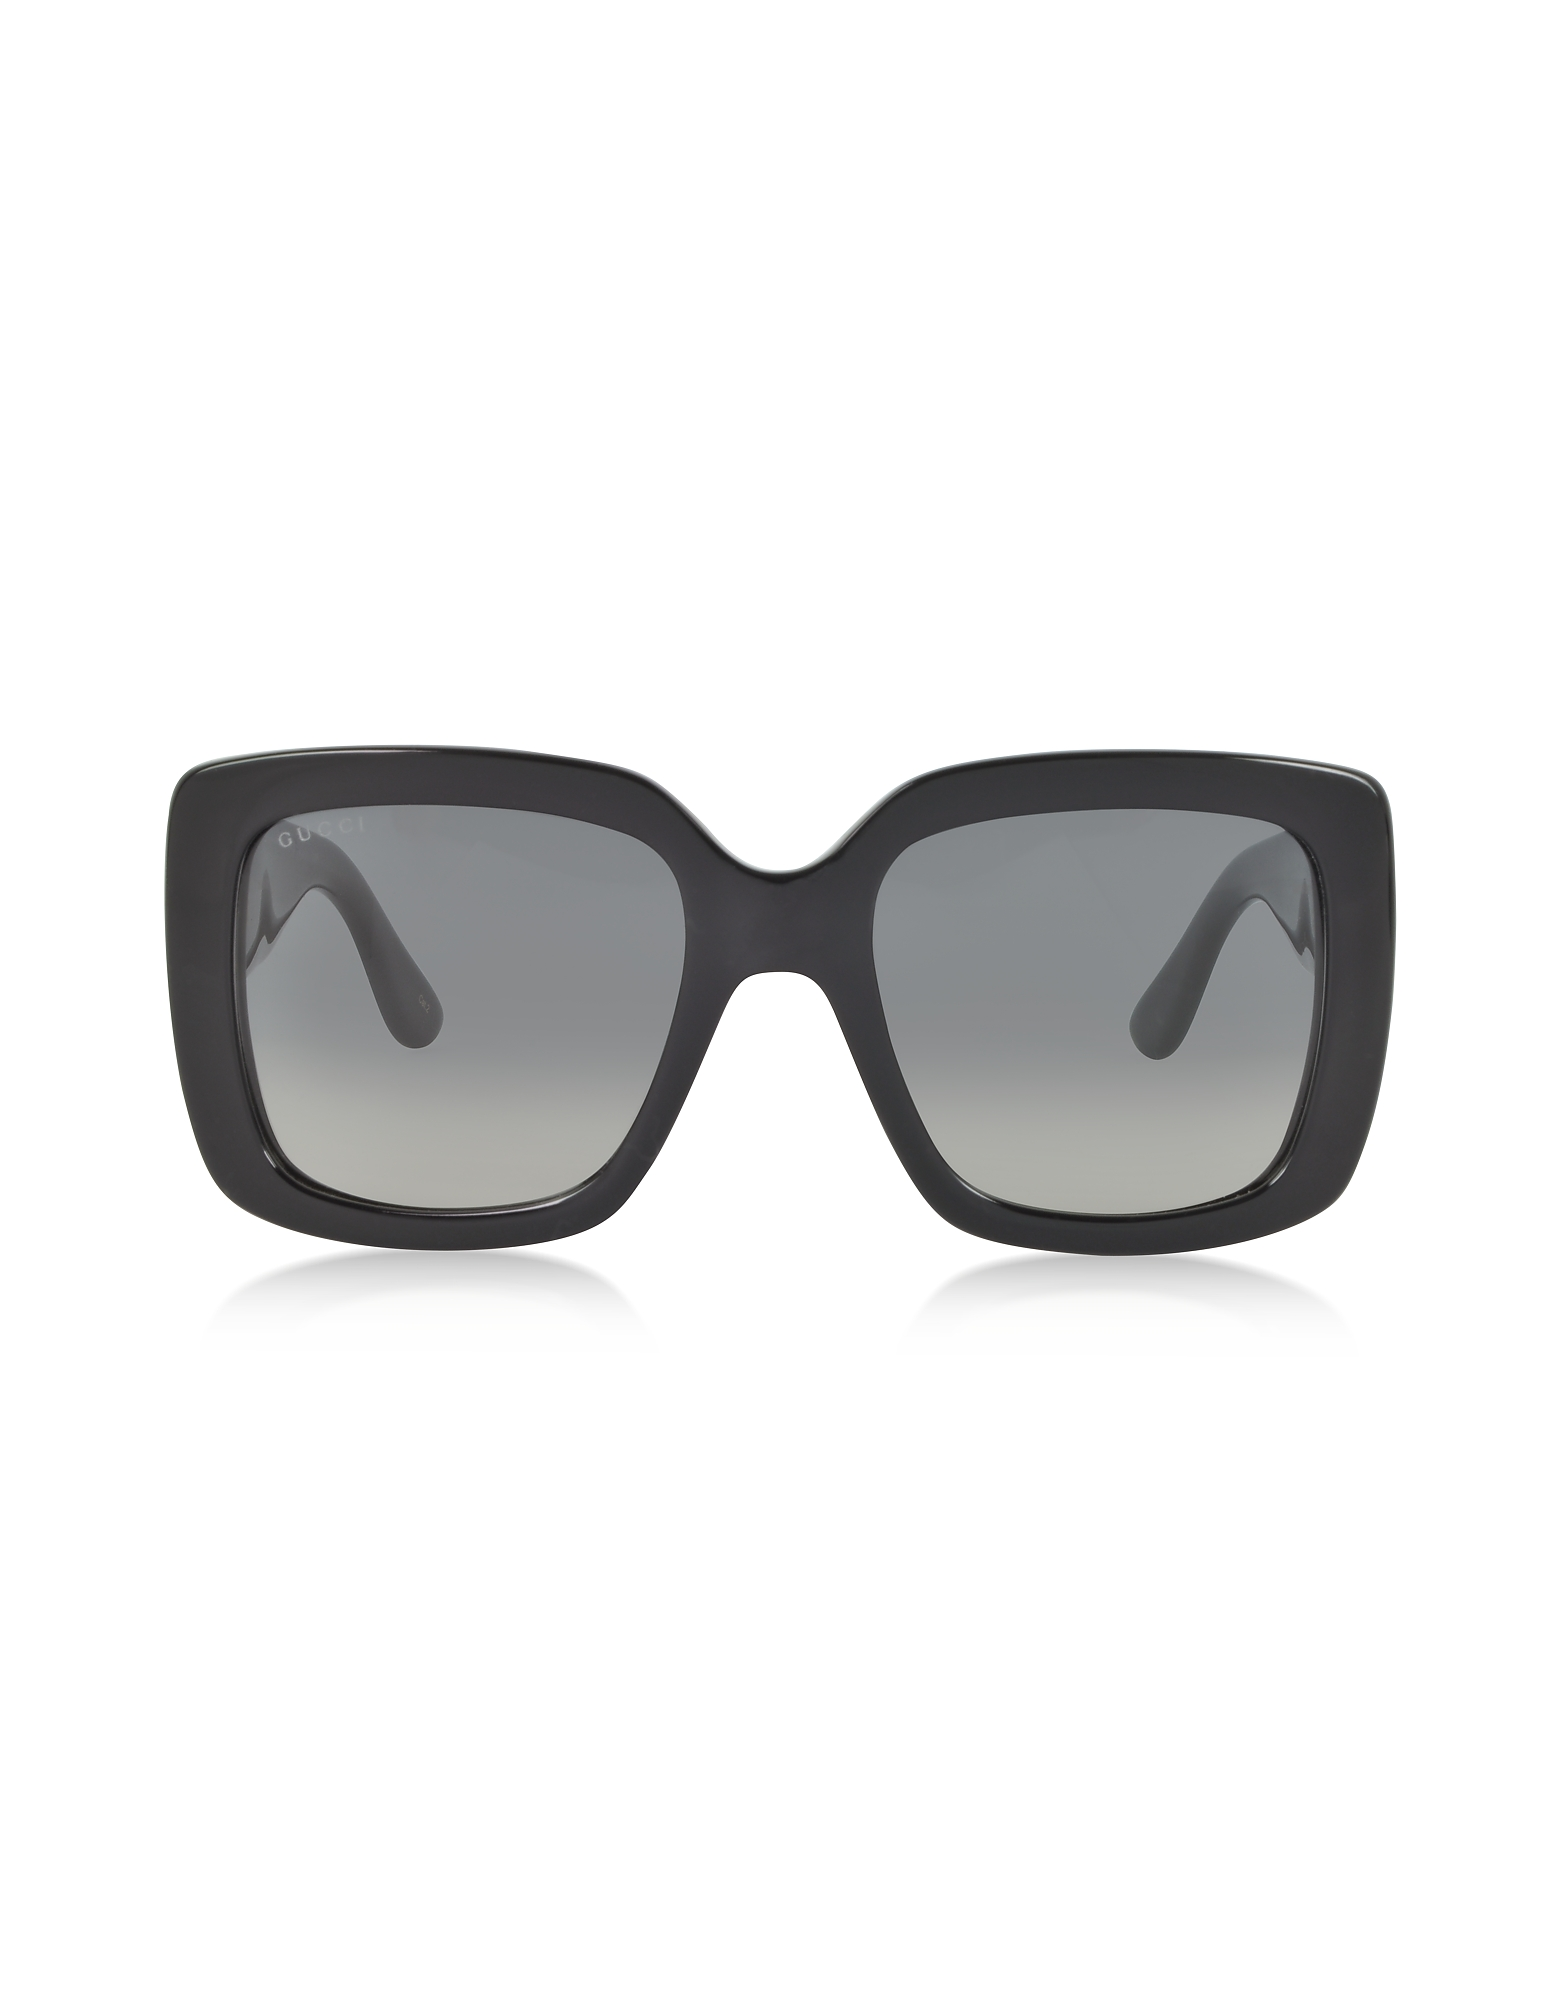 Black Oversized Square Frame Women's Sunglasses